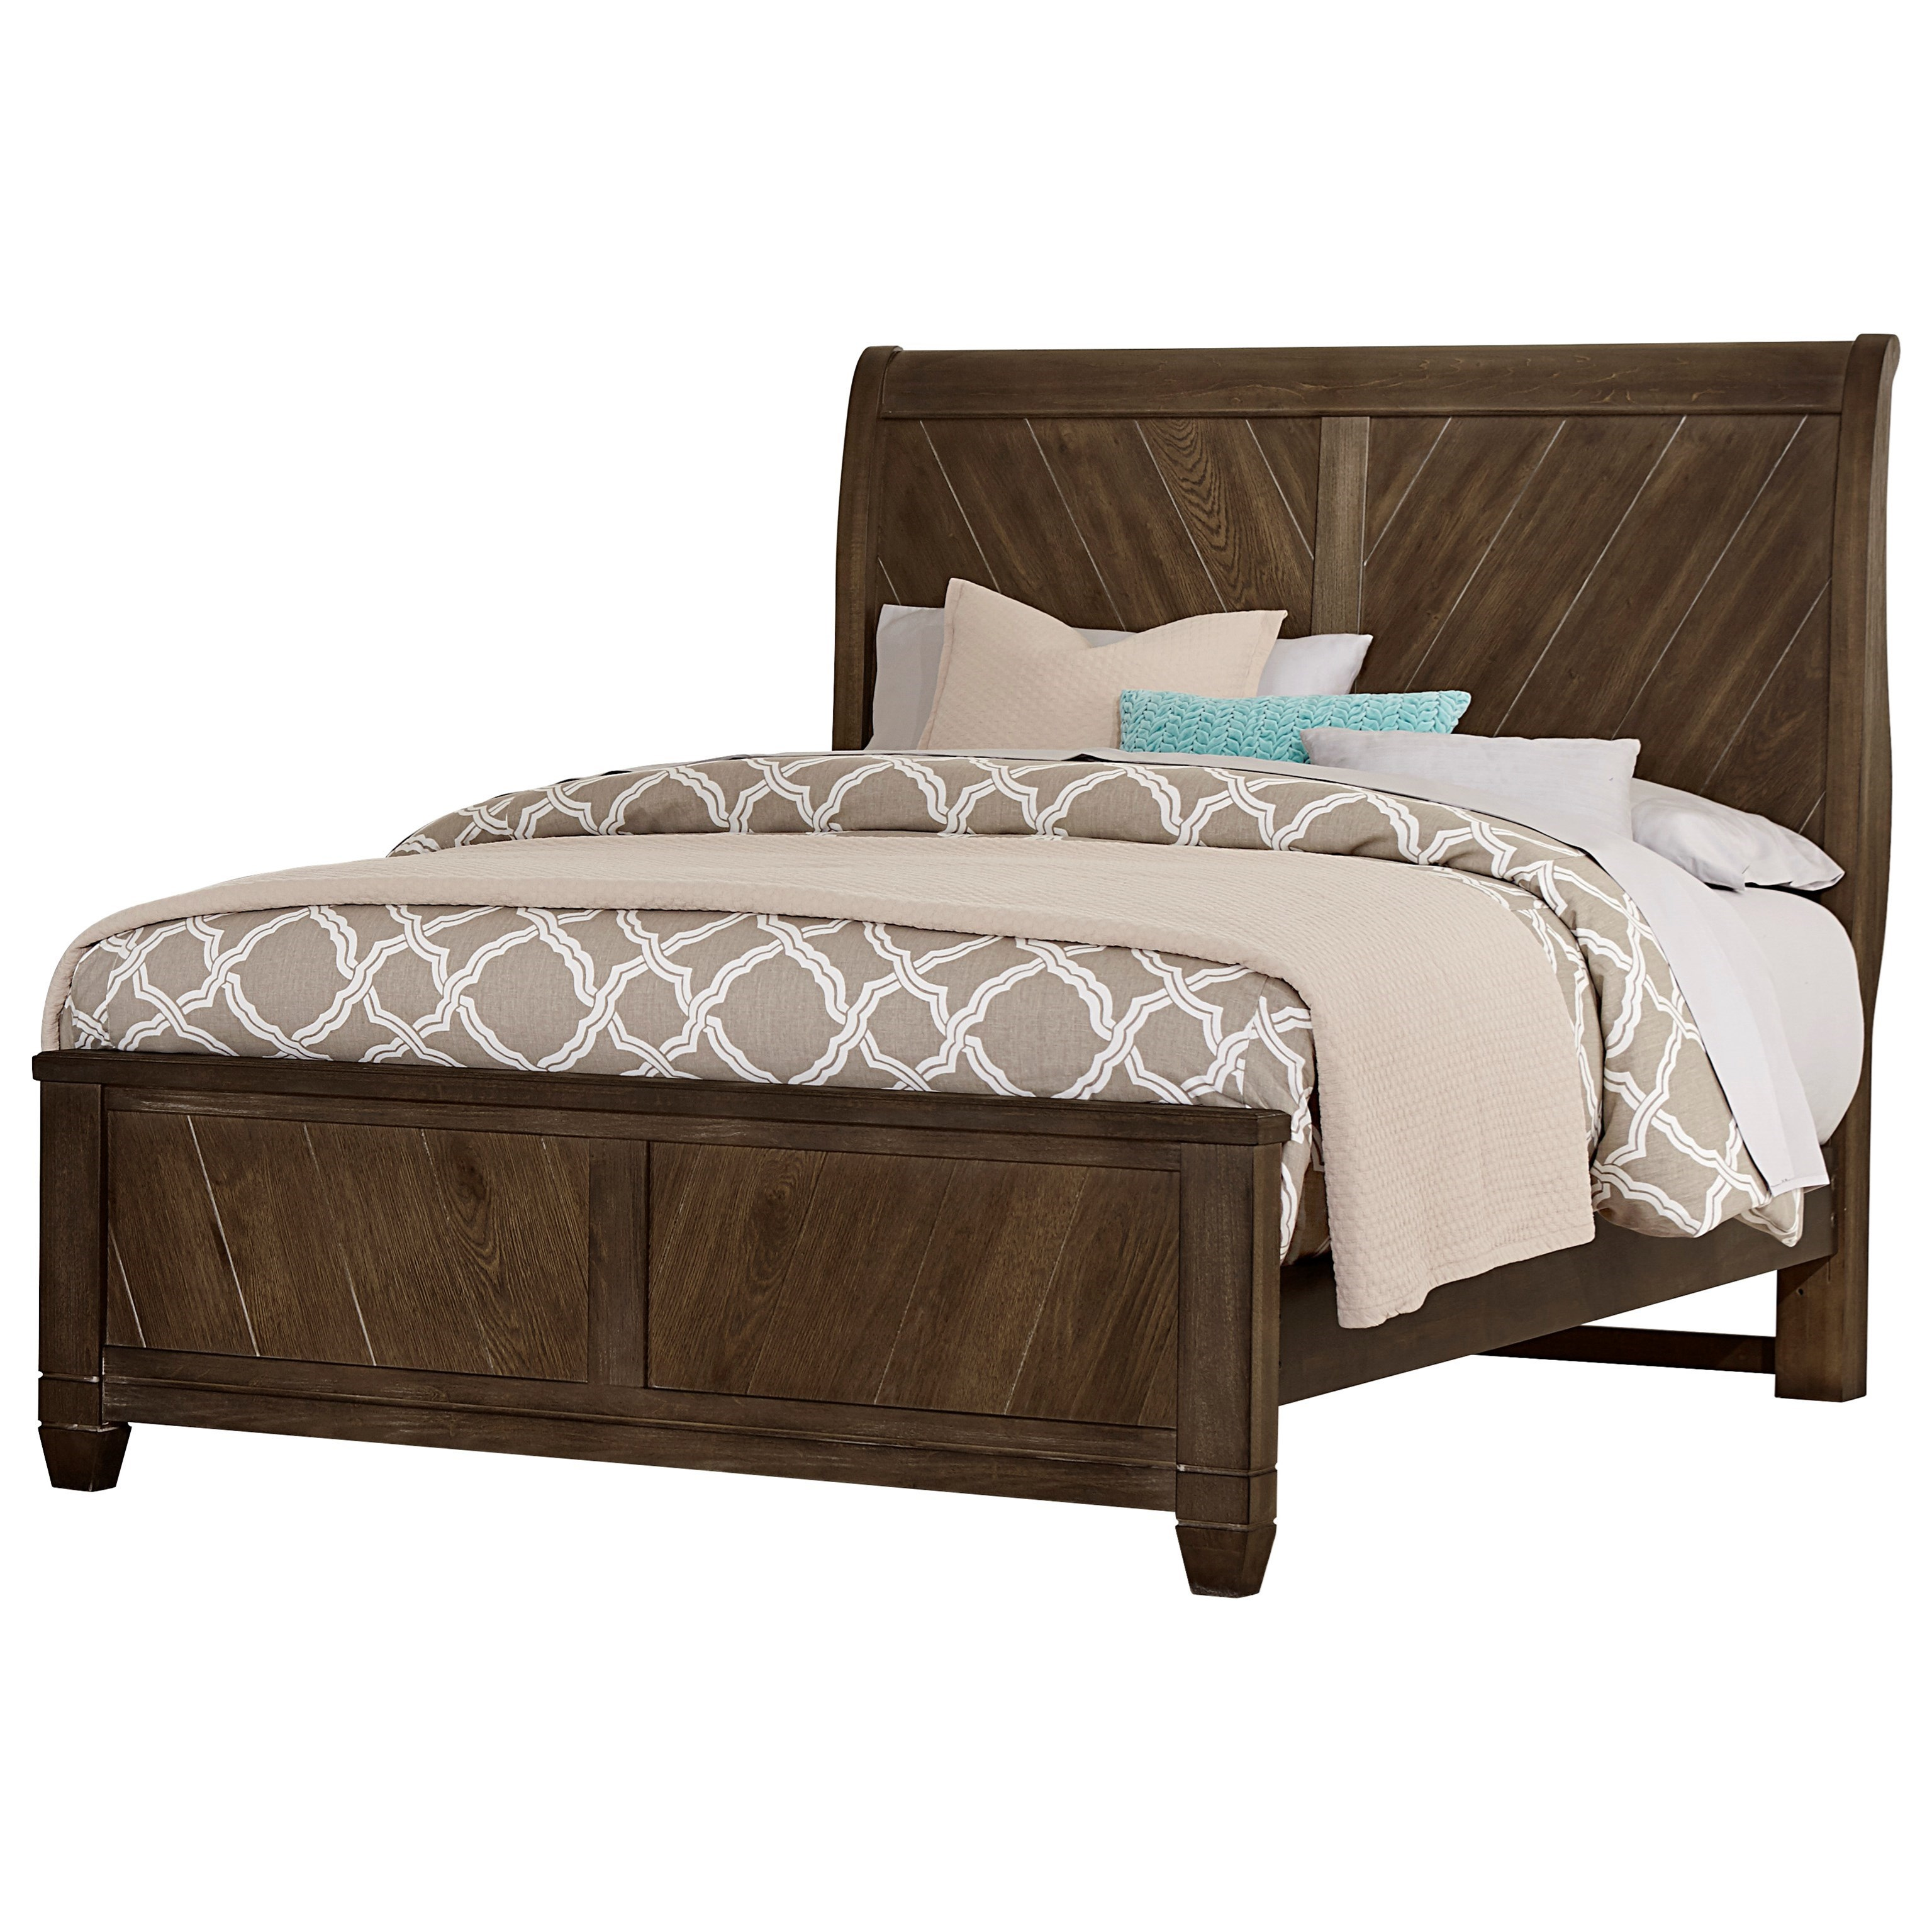 Vaughan Bassett Rustic Cottage King Sleigh Bed - Item Number: 640-663+866+922+MS2